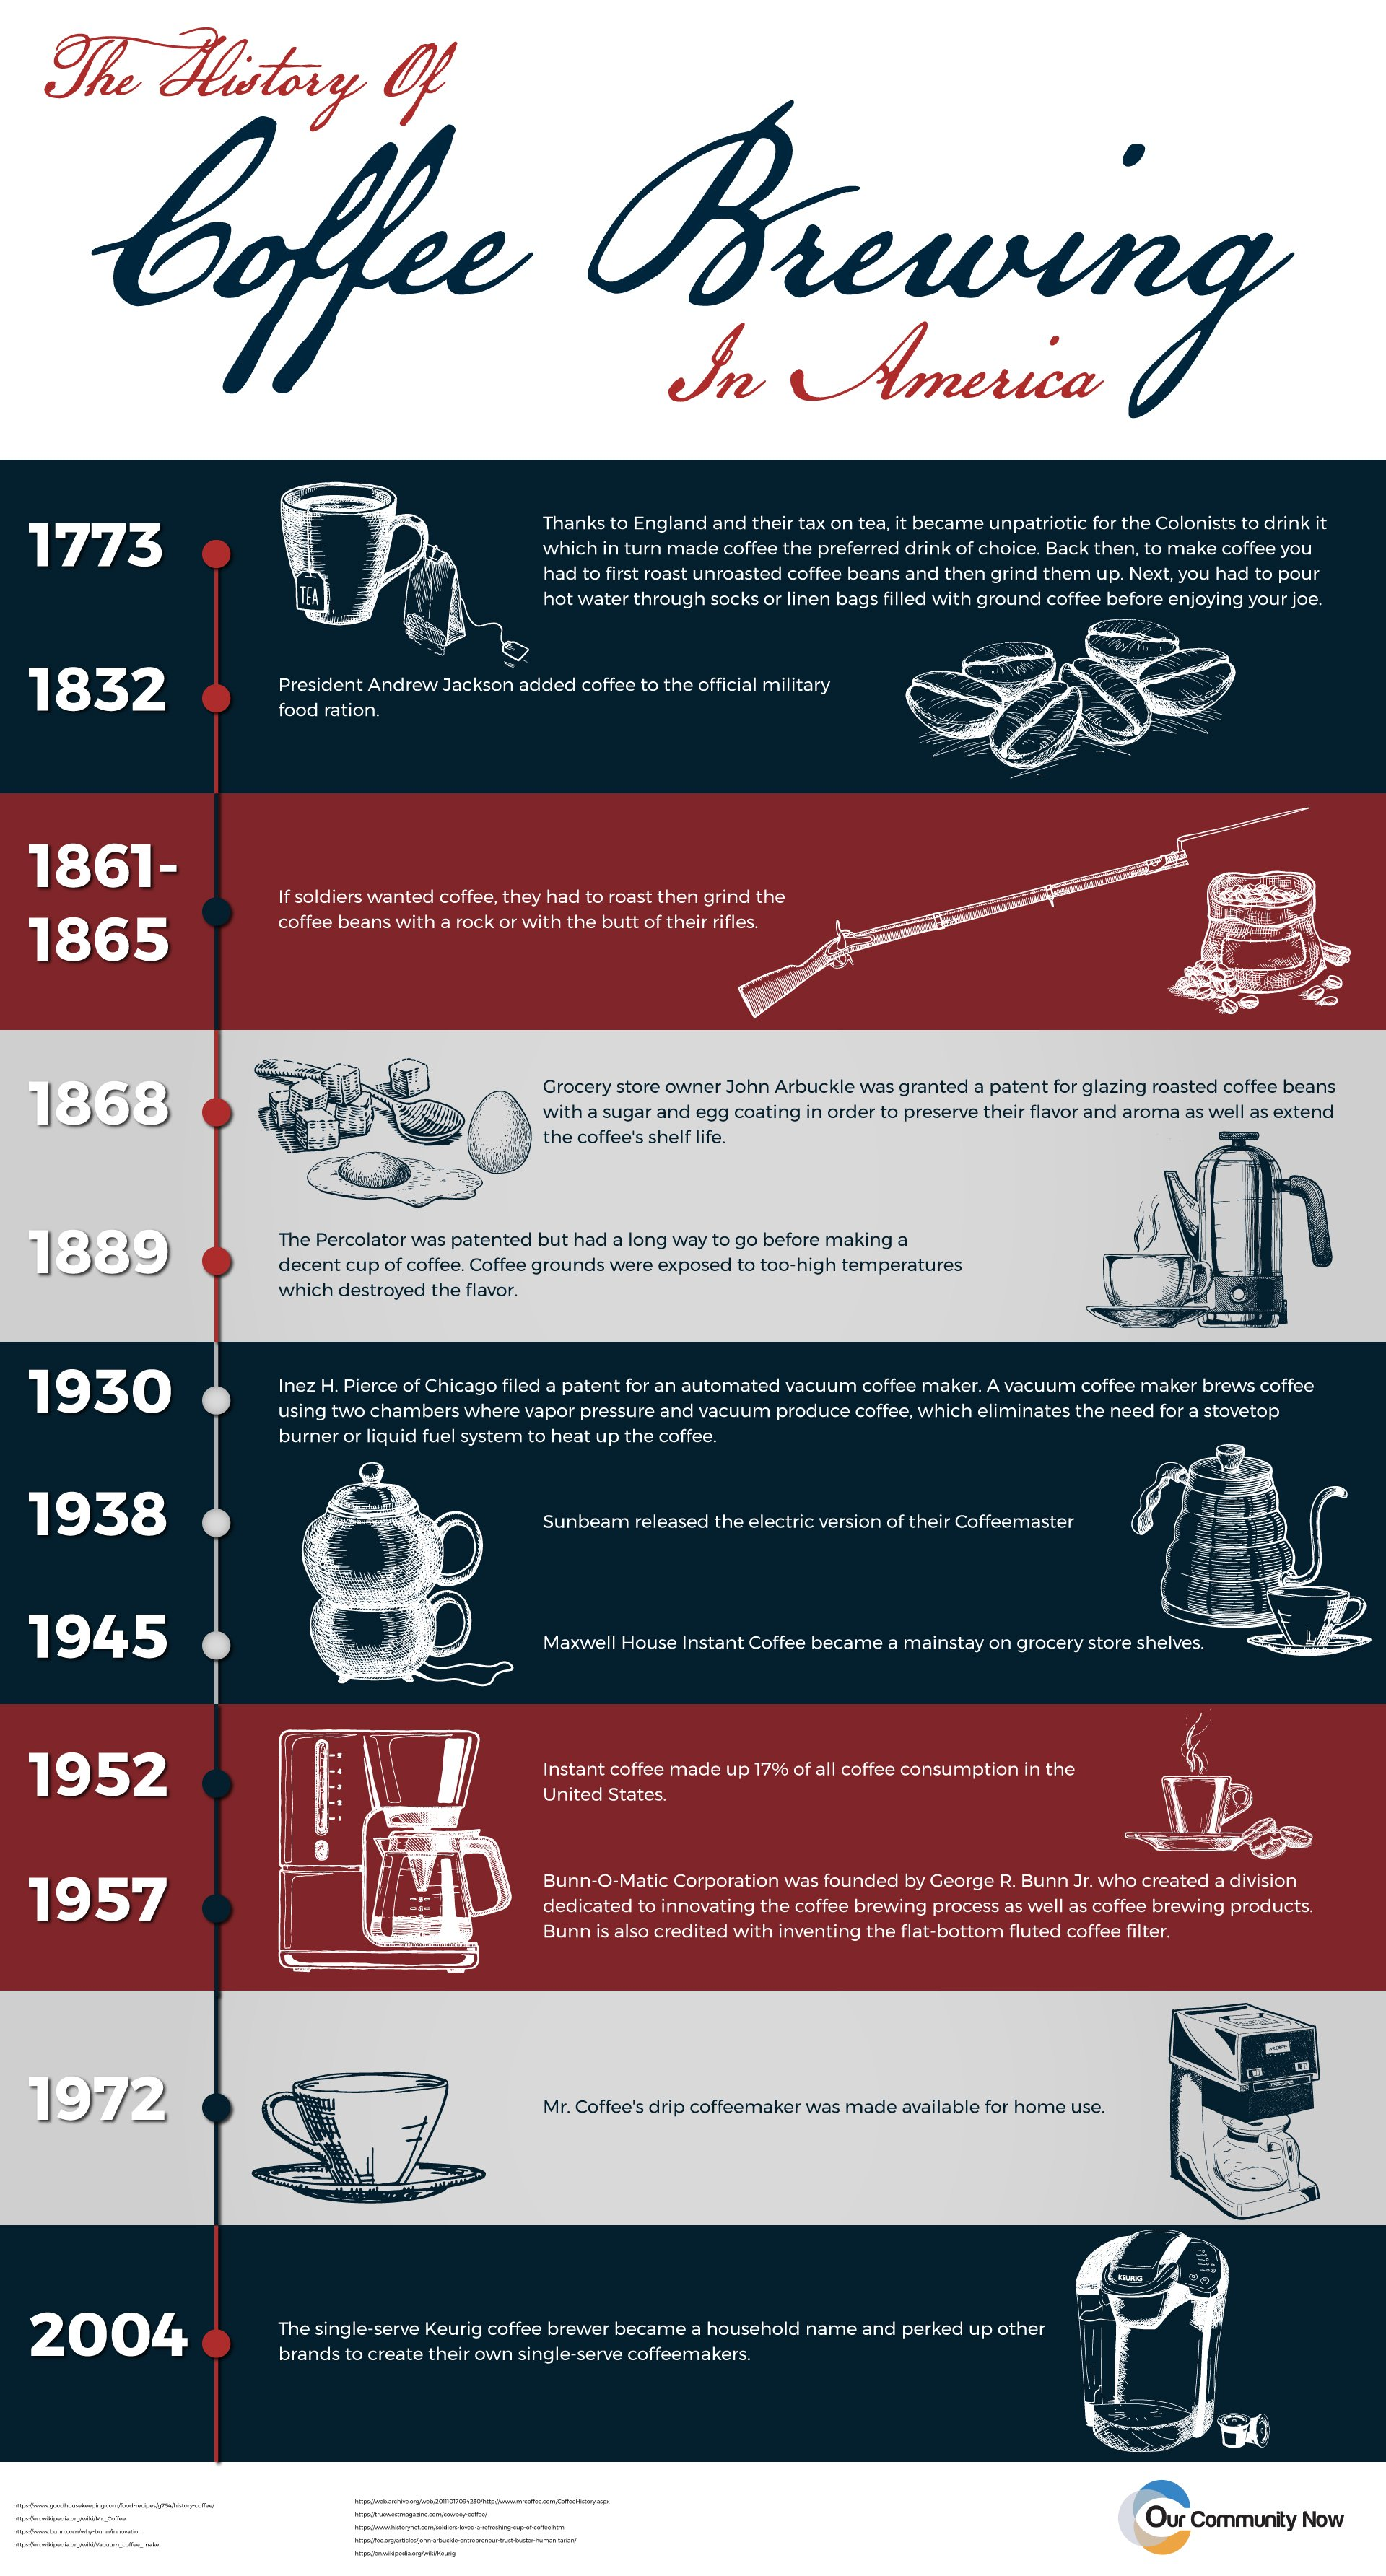 history of coffee brewing in america infographic